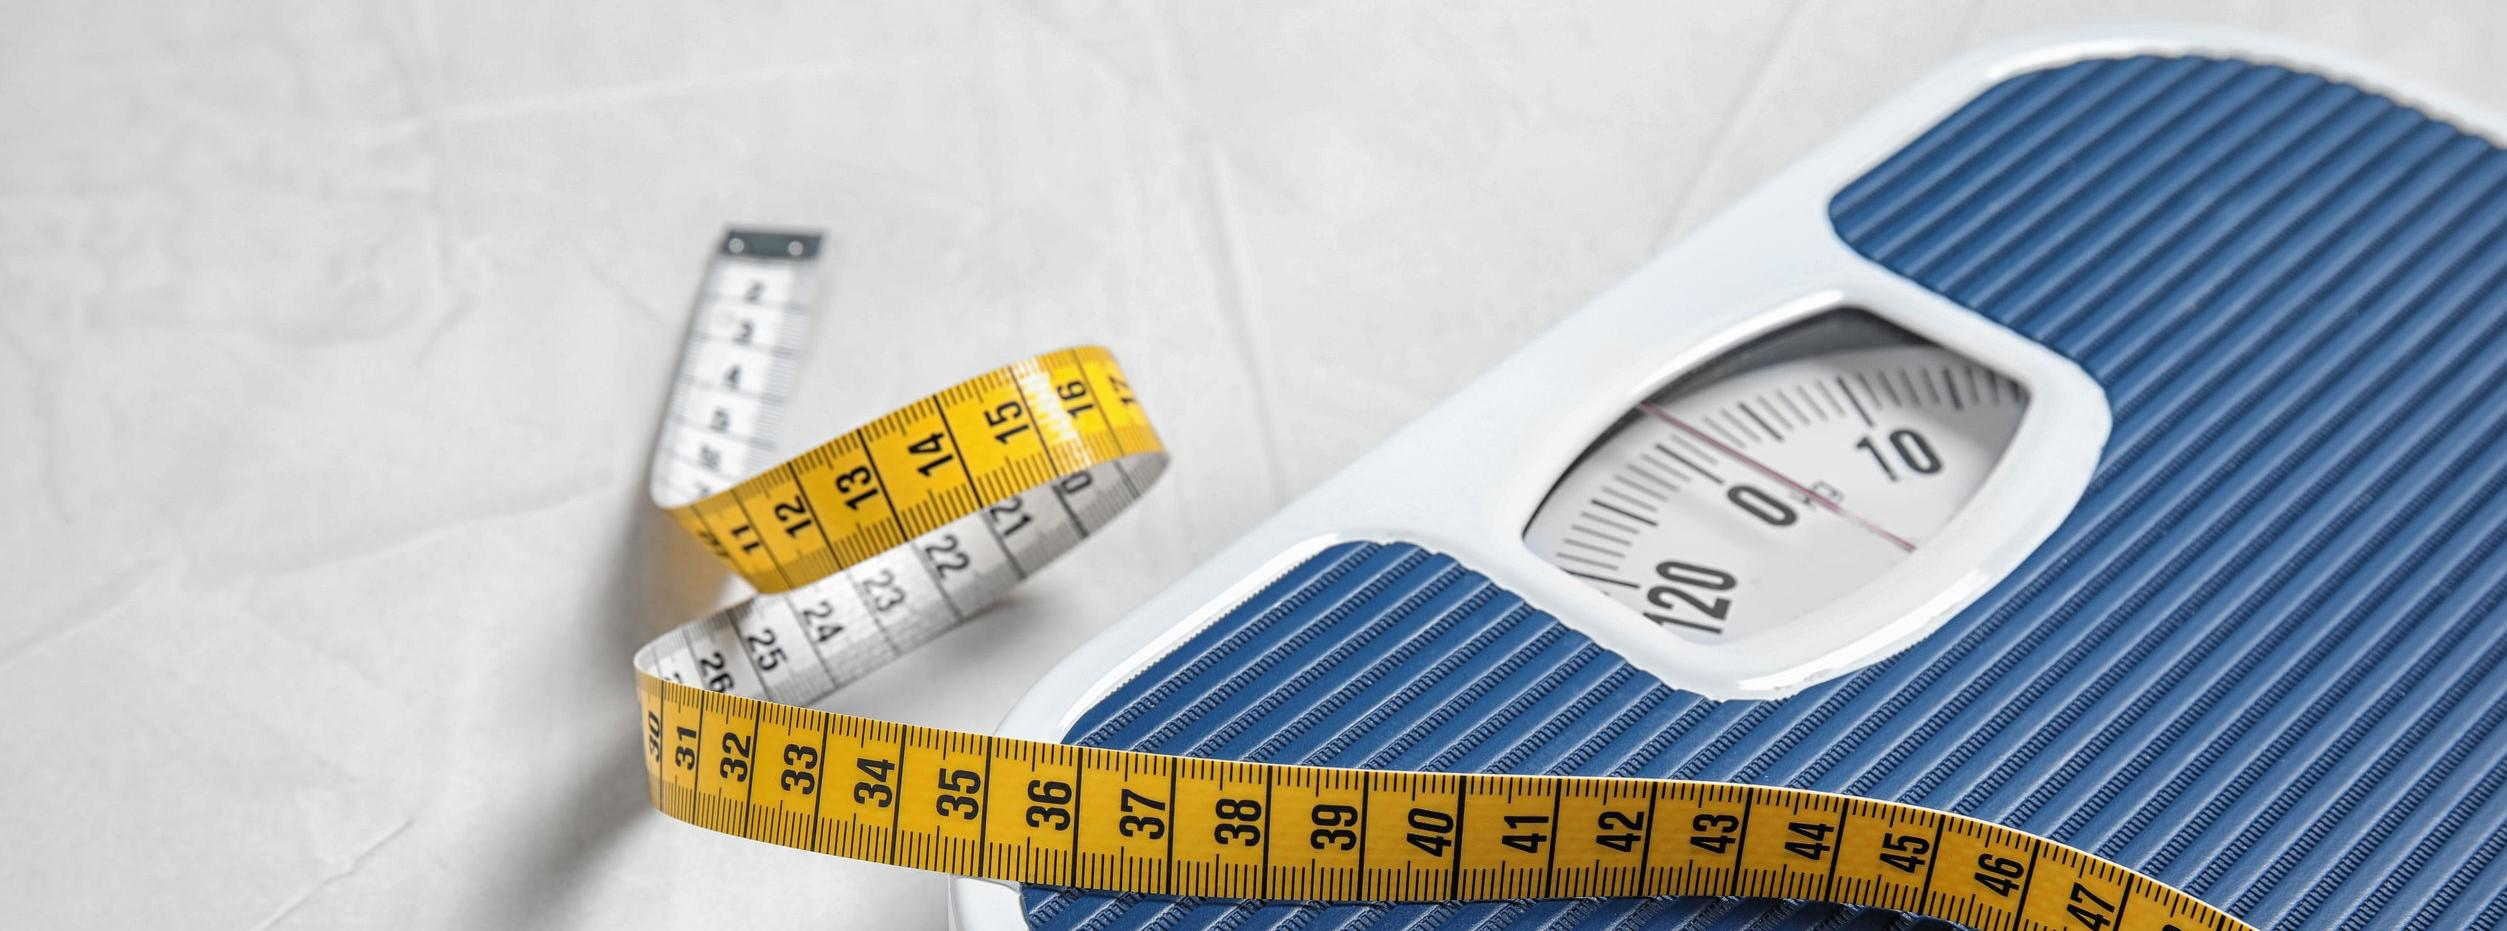 A picture of a scale and tape measure, tools for fast weight loss.